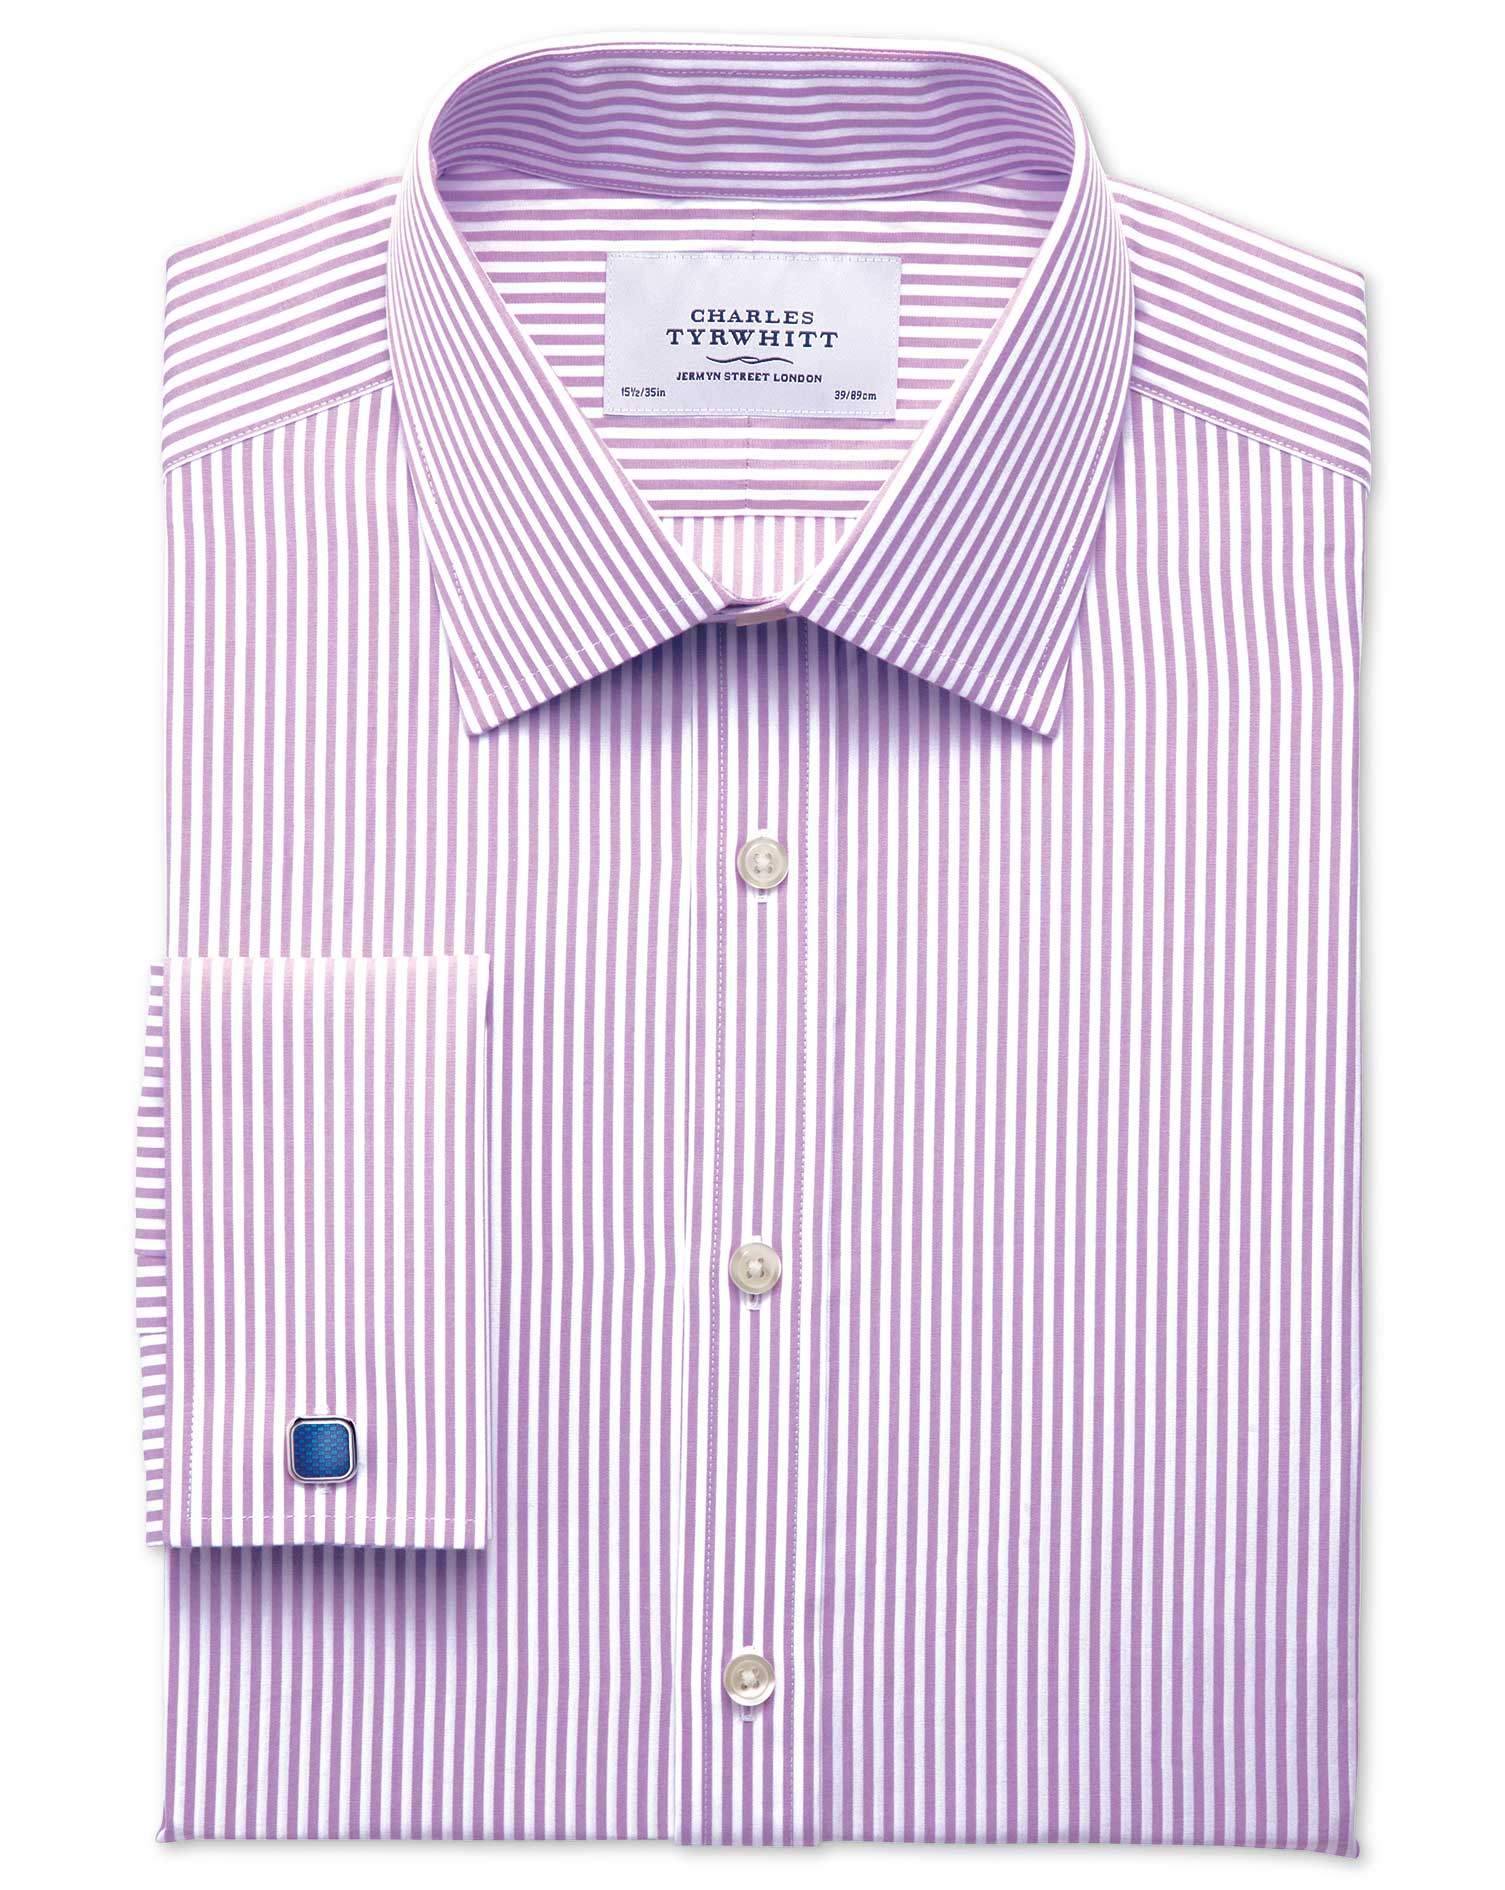 Slim Fit Bengal Stripe Lilac Cotton Formal Shirt Single Cuff Size 16/34 by Charles Tyrwhitt